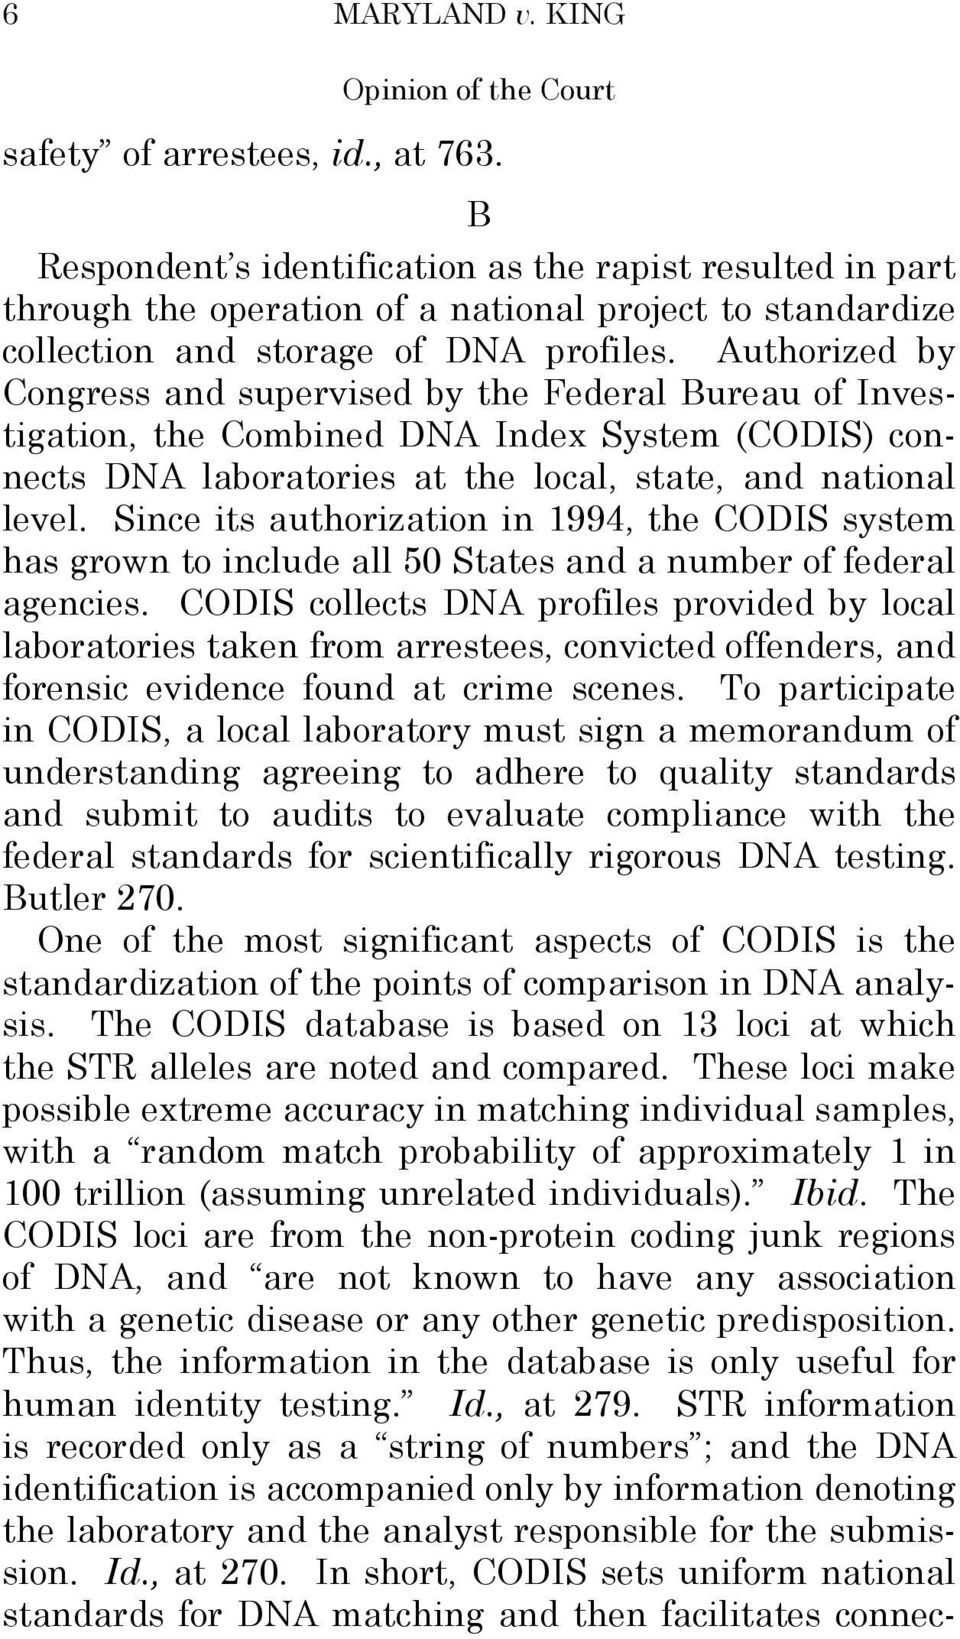 Authorized by Congress and supervised by the Federal Bureau of Investigation, the Combined DNA Index System (CODIS) connects DNA laboratories at the local, state, and national level.